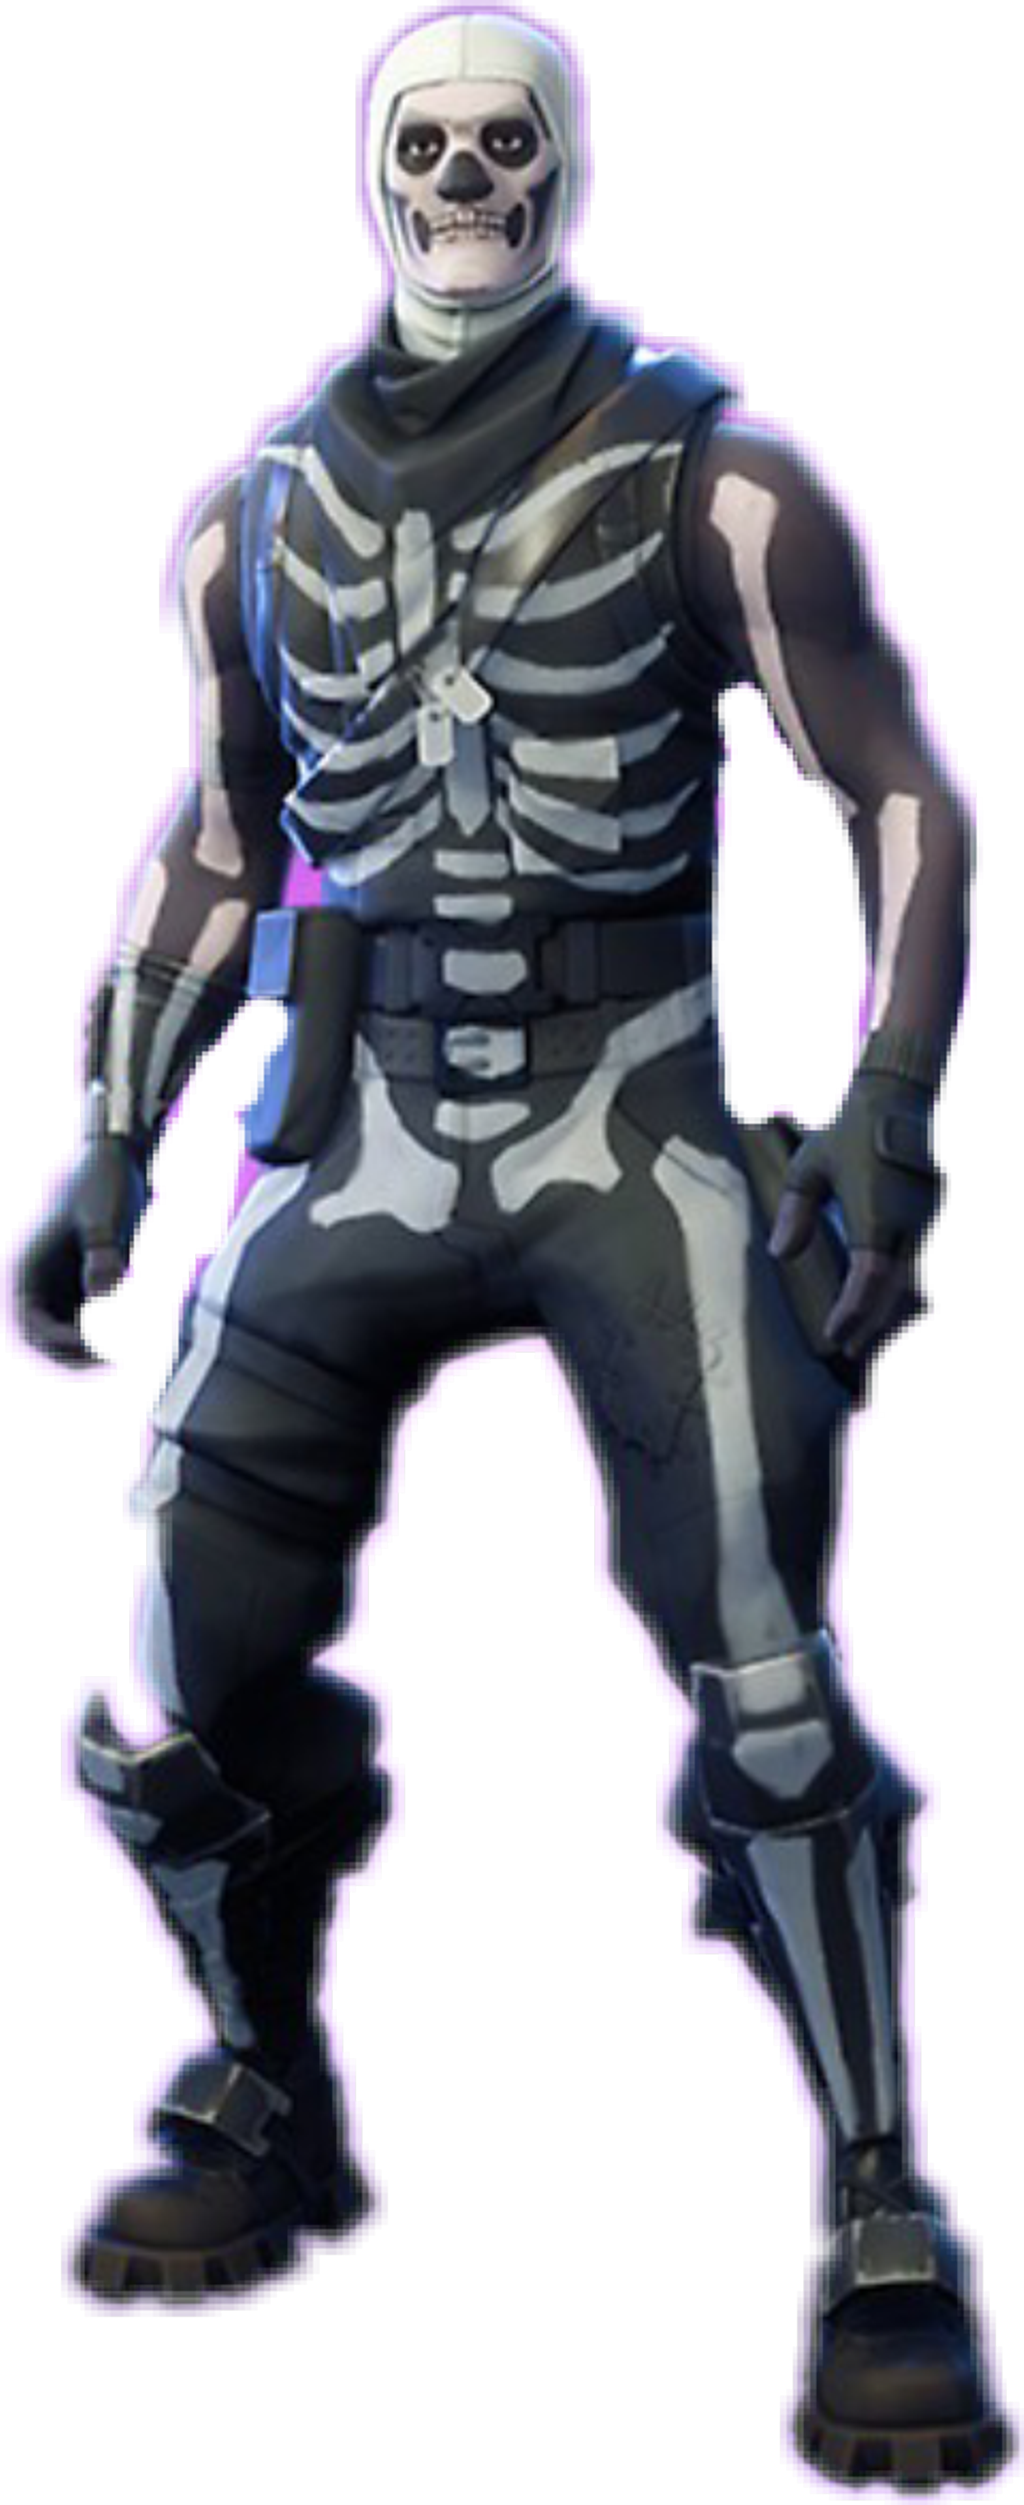 Skull trooper clipart real life. Fortnite skin sticker by